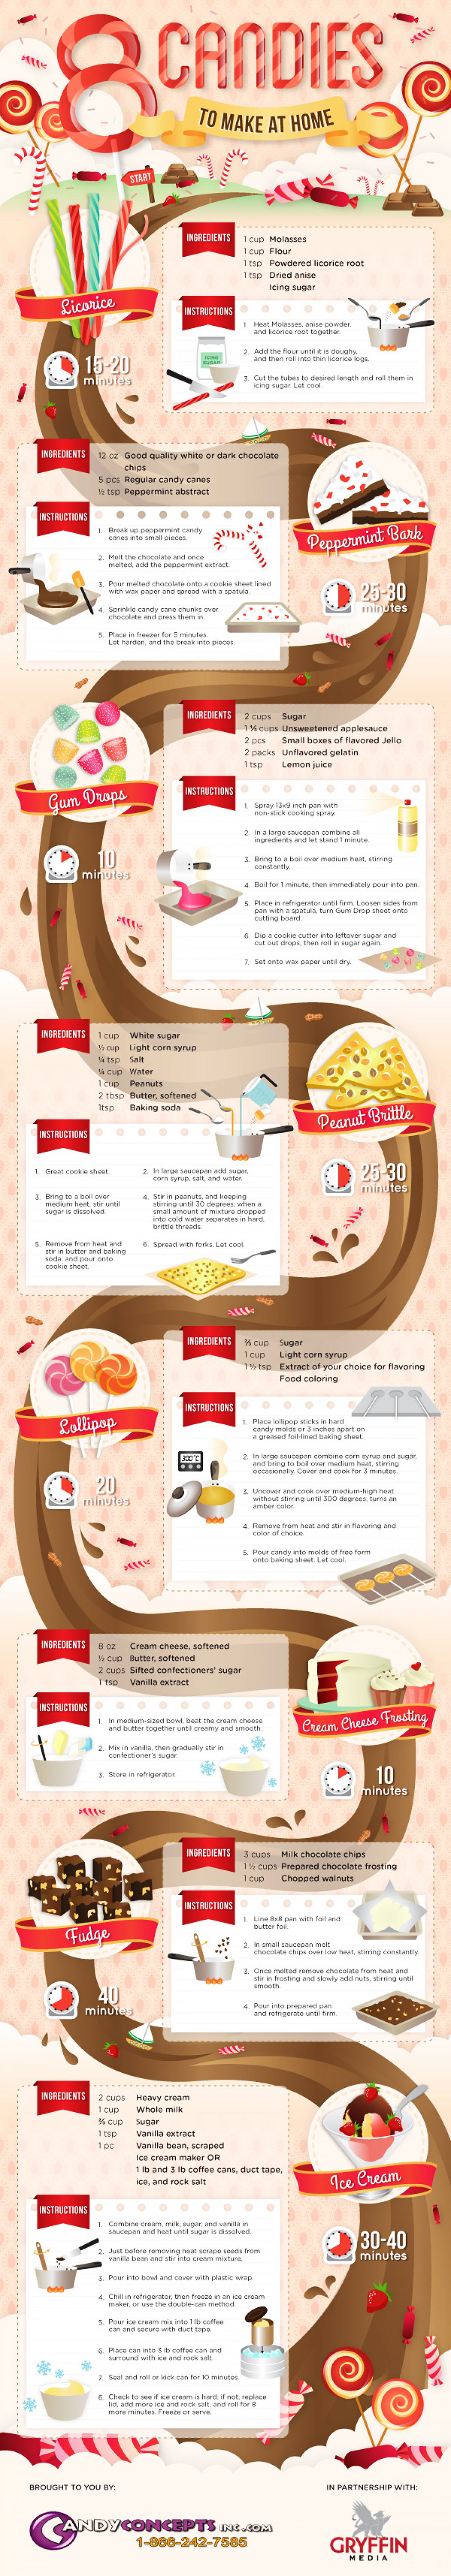 Candies to Make at Home Recipe Infographic